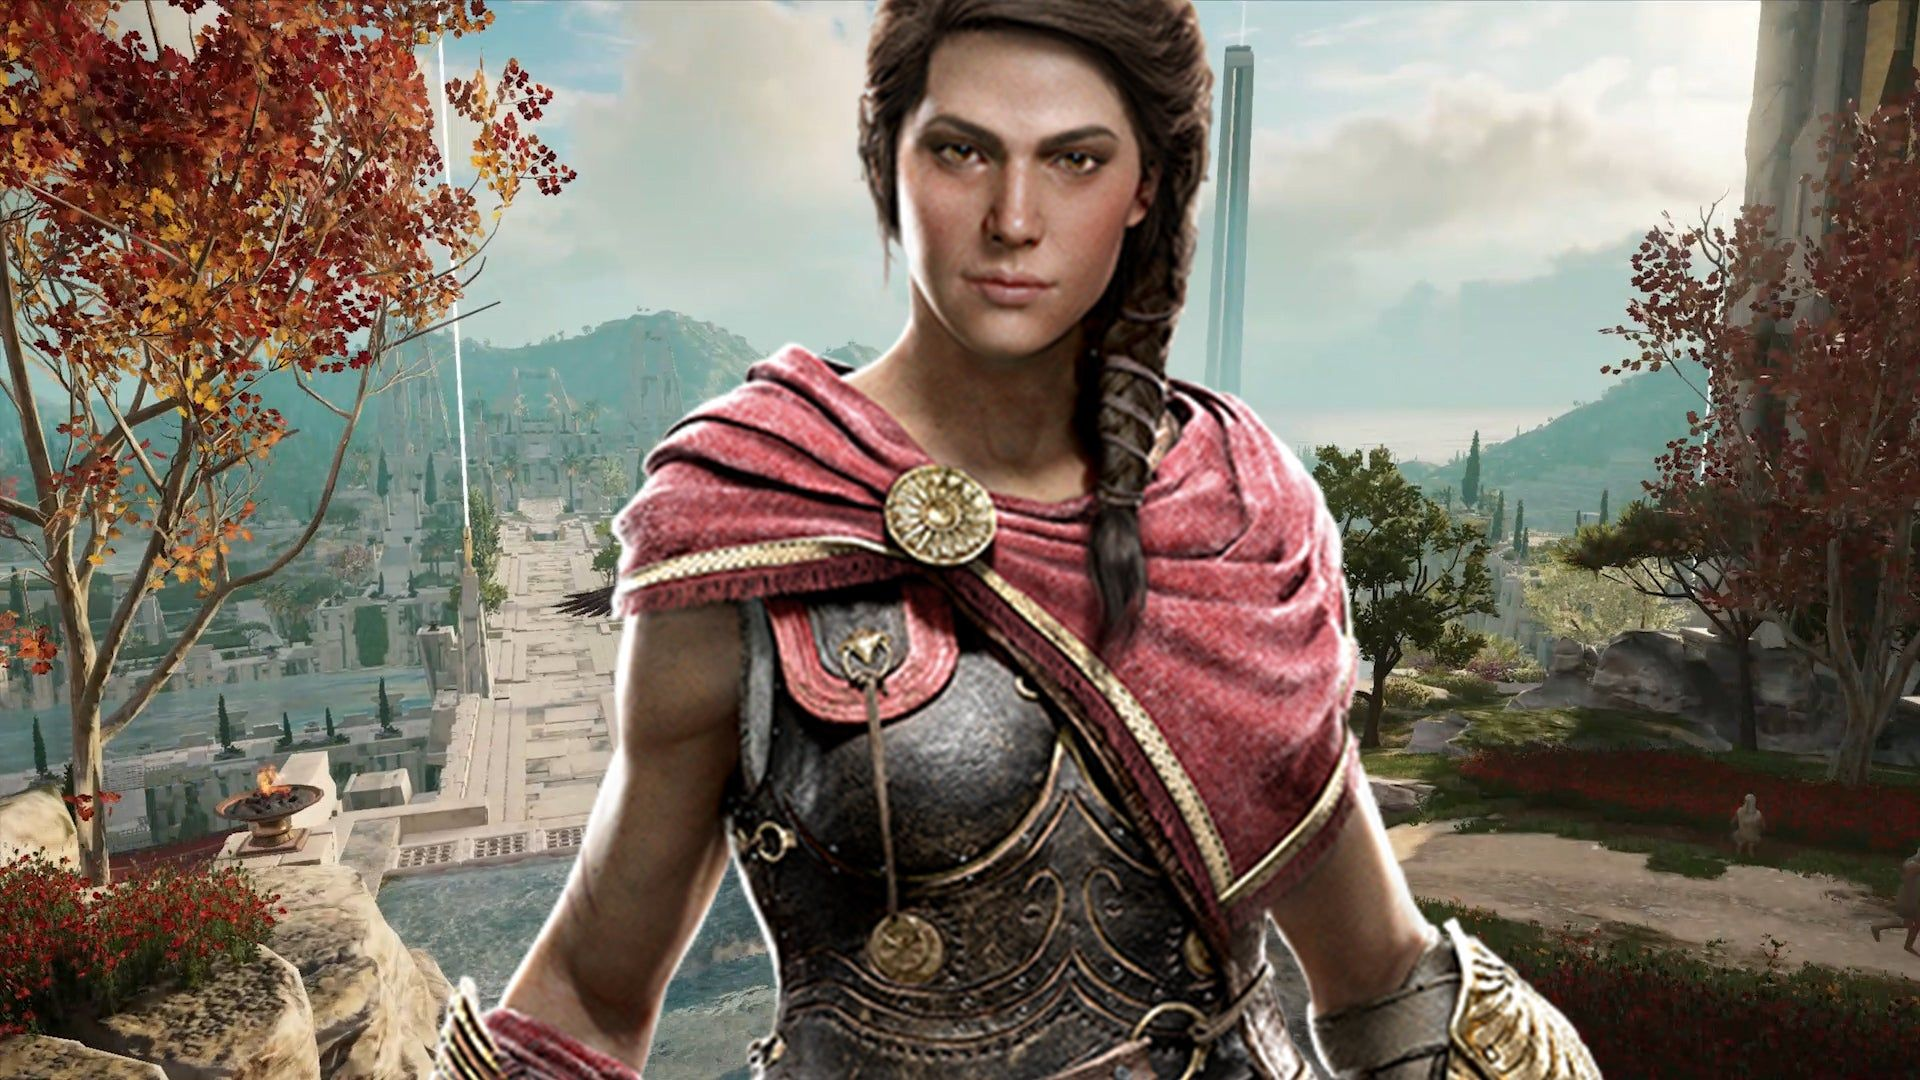 The First 15 Minutes Of Ac Odyssey Fate Of Atlantis Episode 3 Gameplay Check Out The Opening Moments Of The Latest Odyssey Assassins Creed Odyssey Atlantis The fate of atlantis episode 3